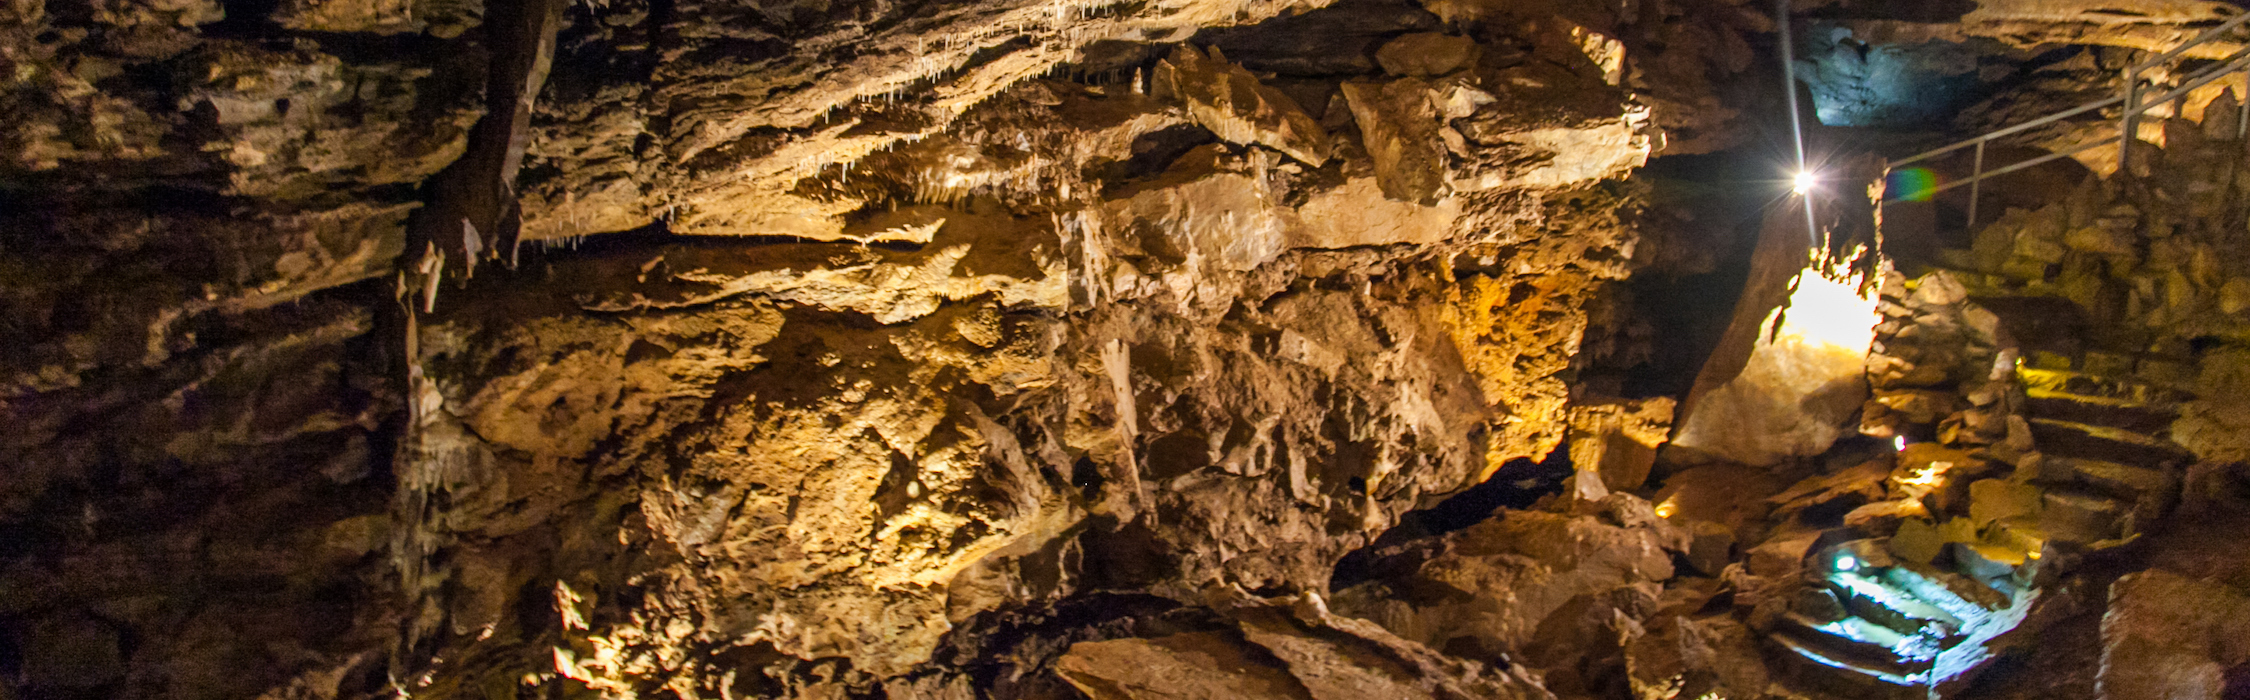 The strange cave formations of Oregon Caves National Monument in Oregon - June 2010